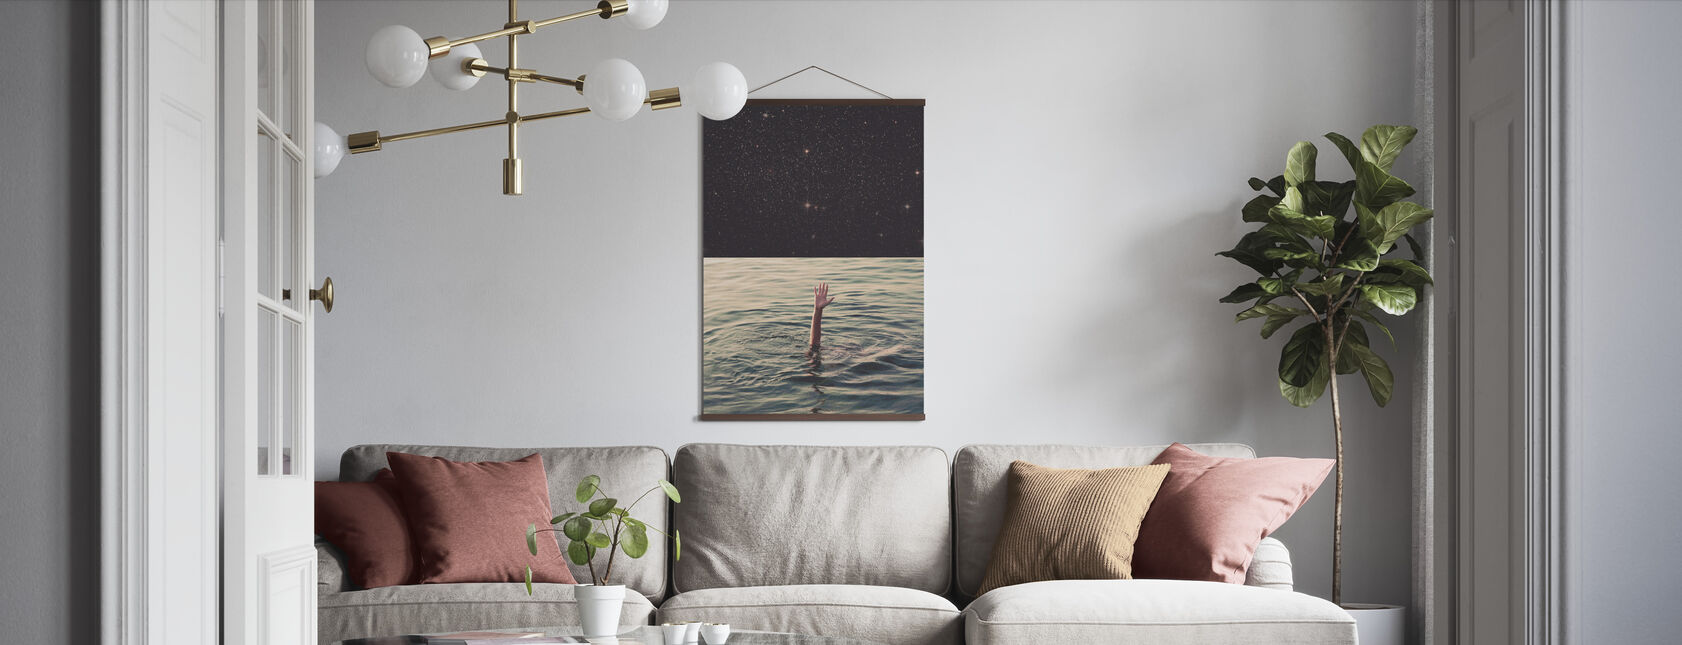 Drowned in Space - Poster - Living Room